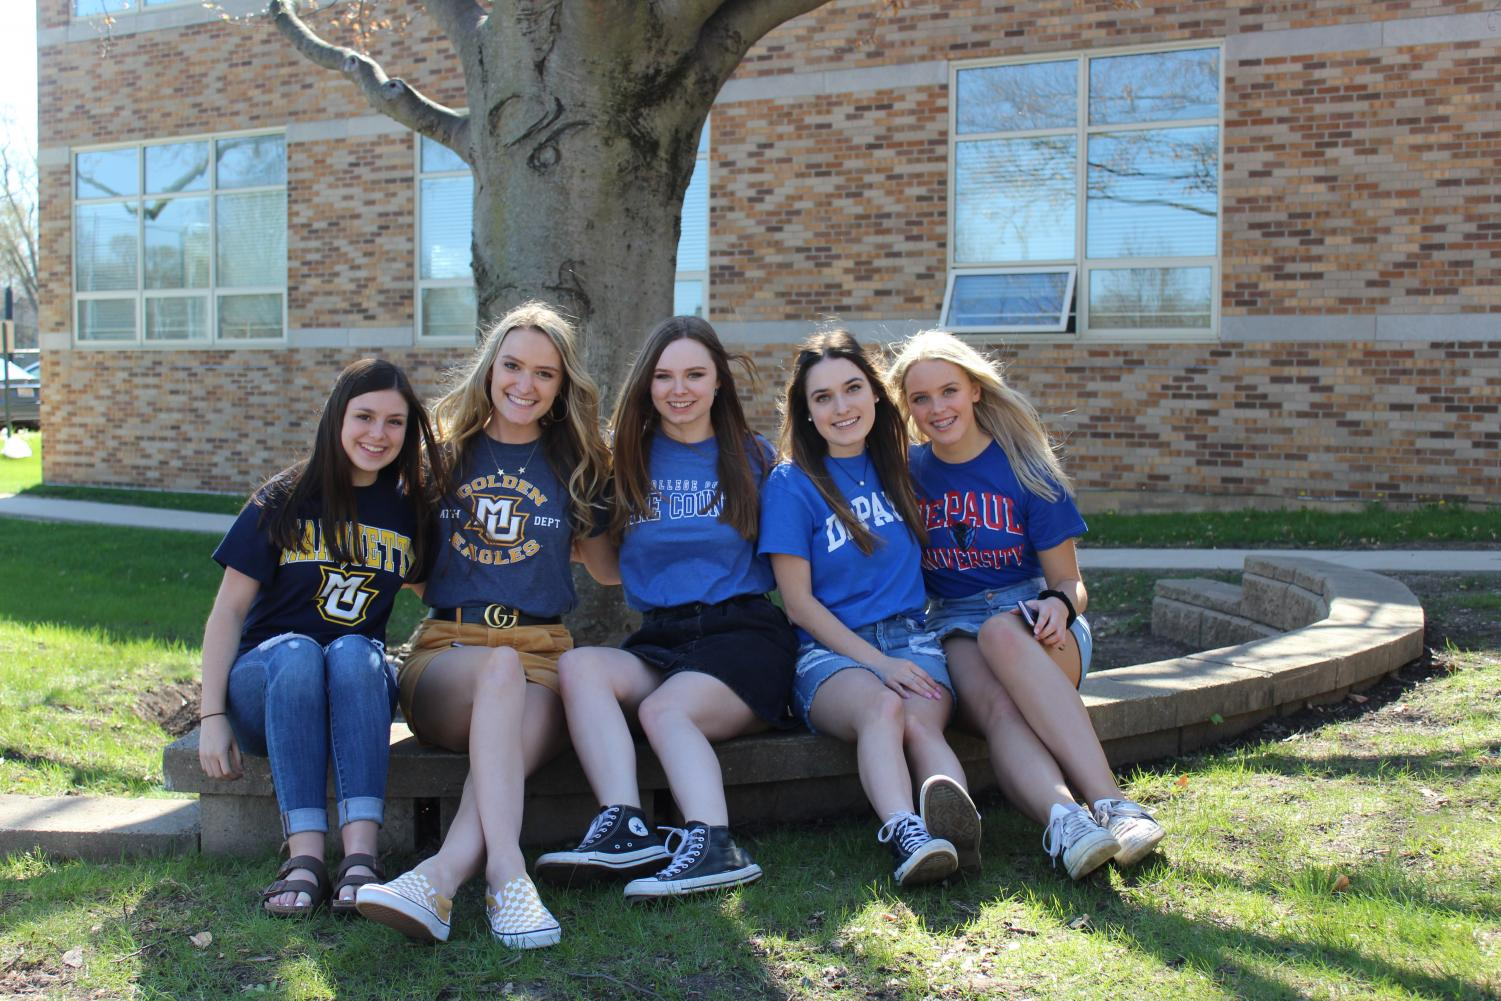 Mariel+Sebby+and+Katie+Kotzan+are+attending+Marquette+University%2C+Clara+Corkins+is+joining+the+College+of+Lake+County+and+Natalie+Brown+and+Justine+Gacek+are+going+to+DePaul+University.+%0A